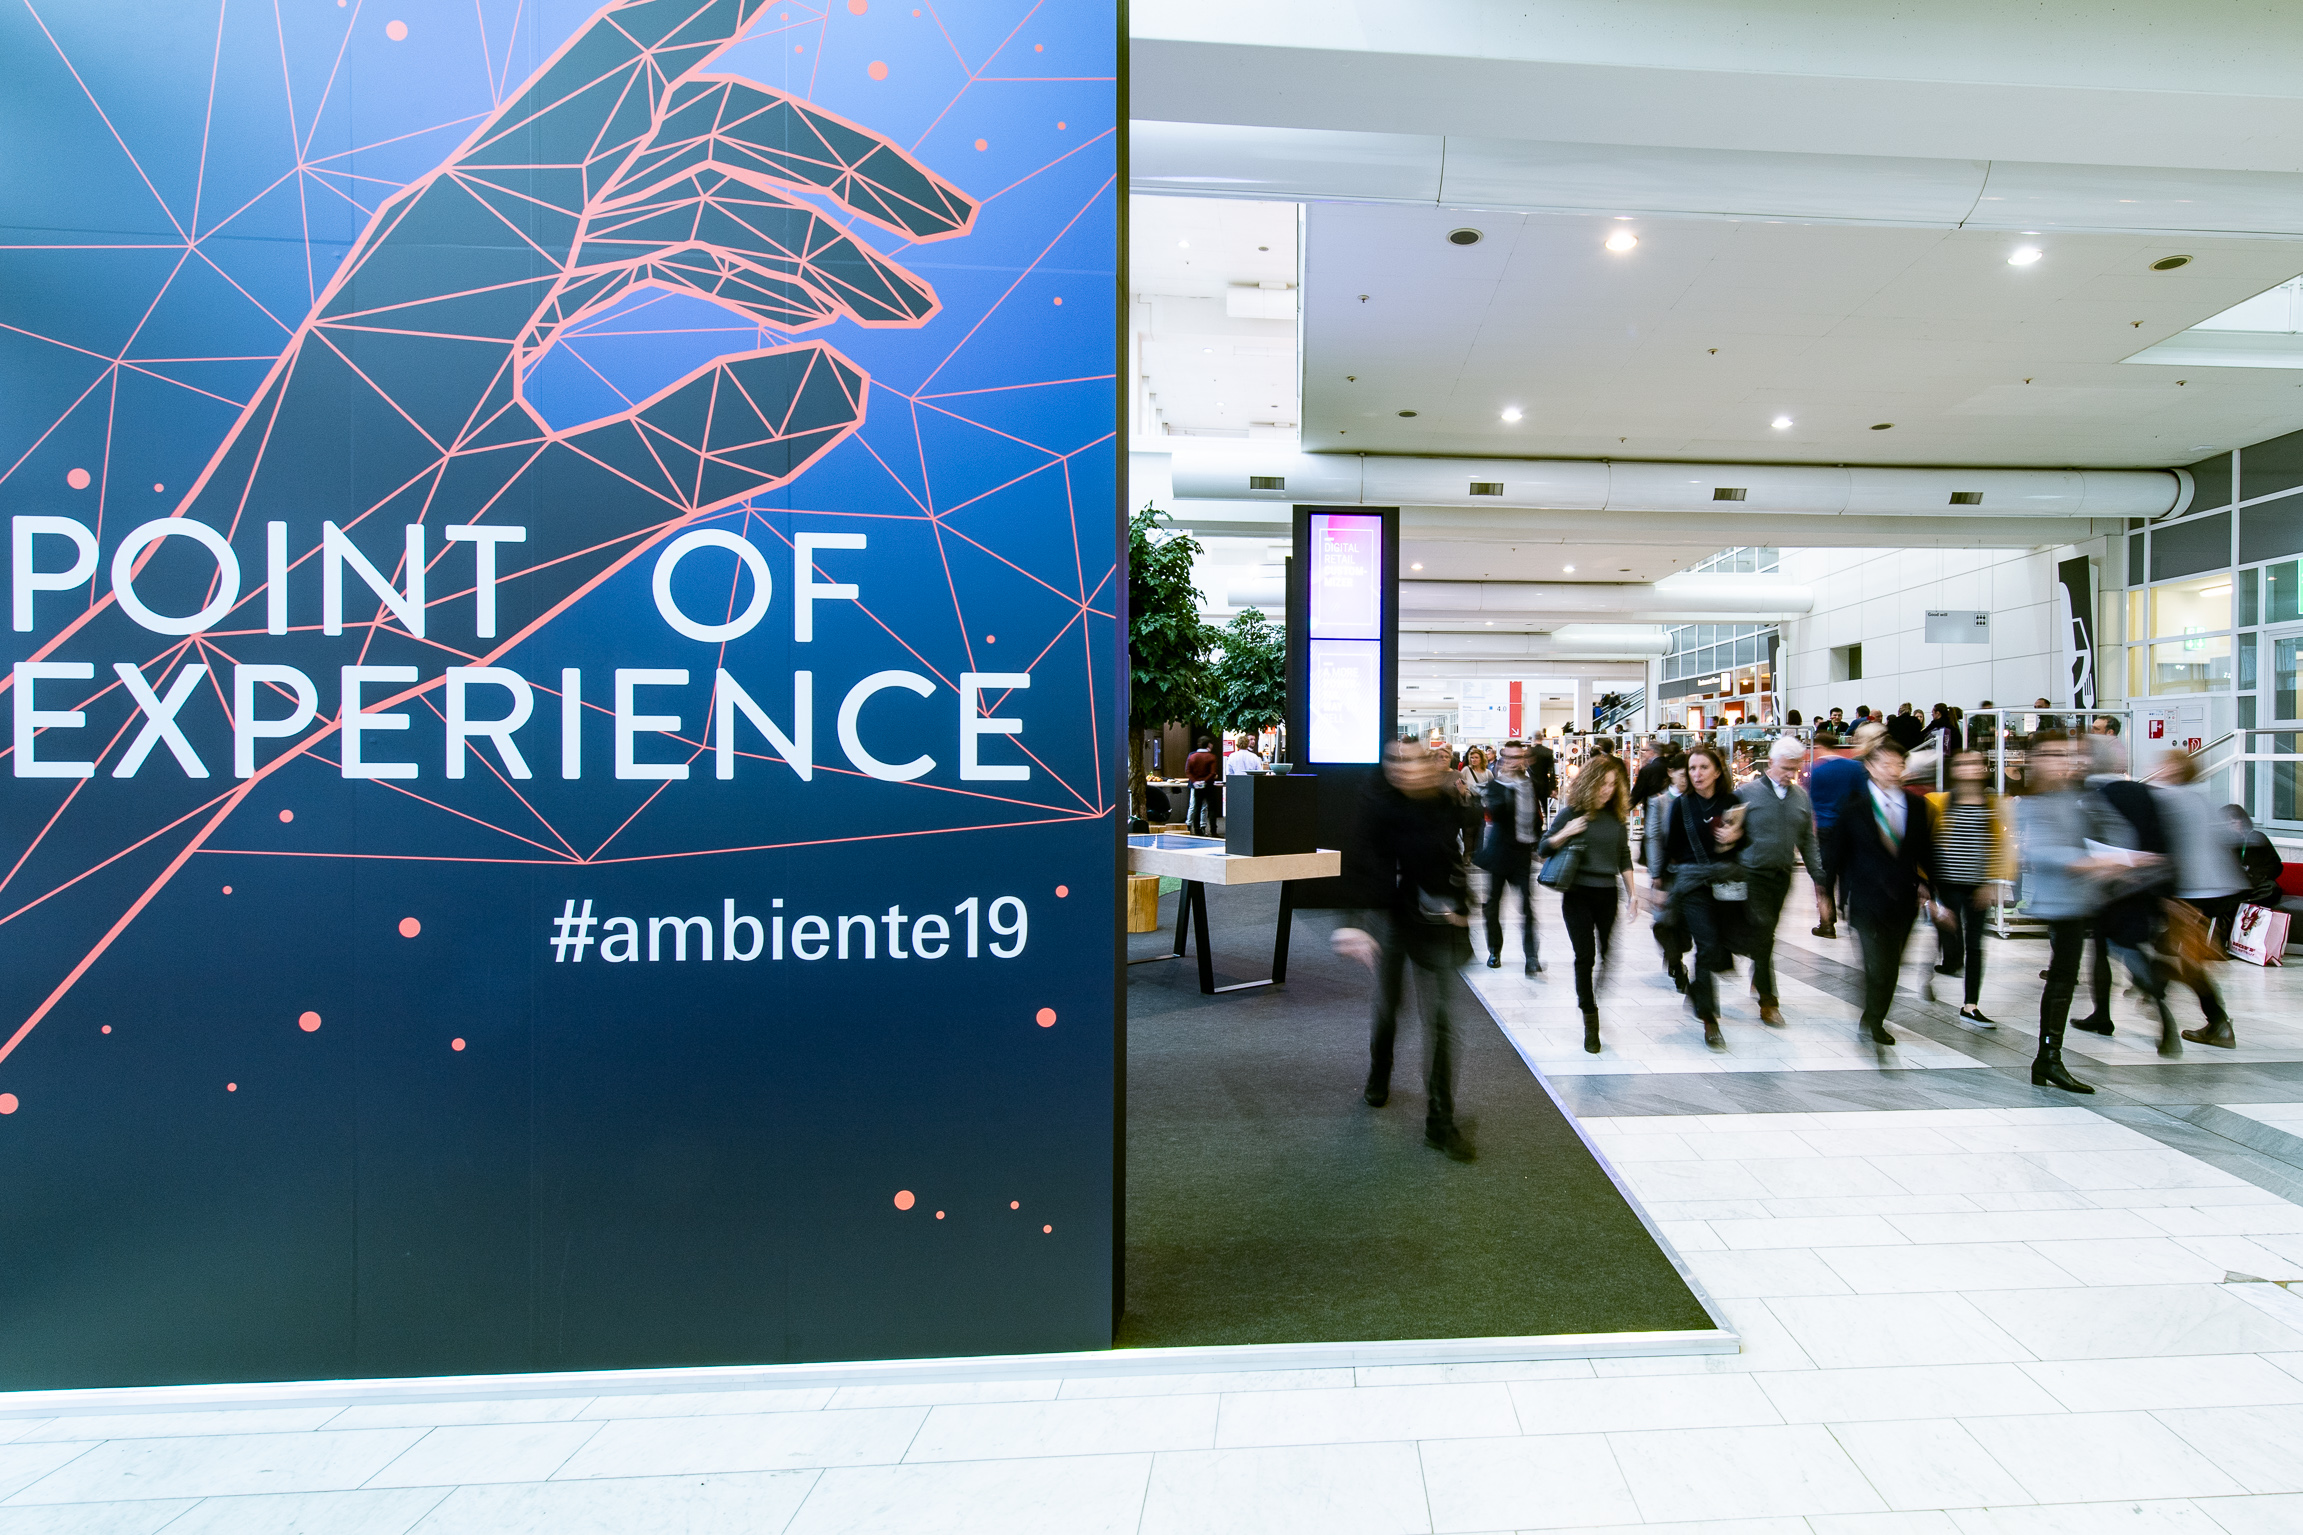 Ambiente - Point of Experience, Foyer 4.1